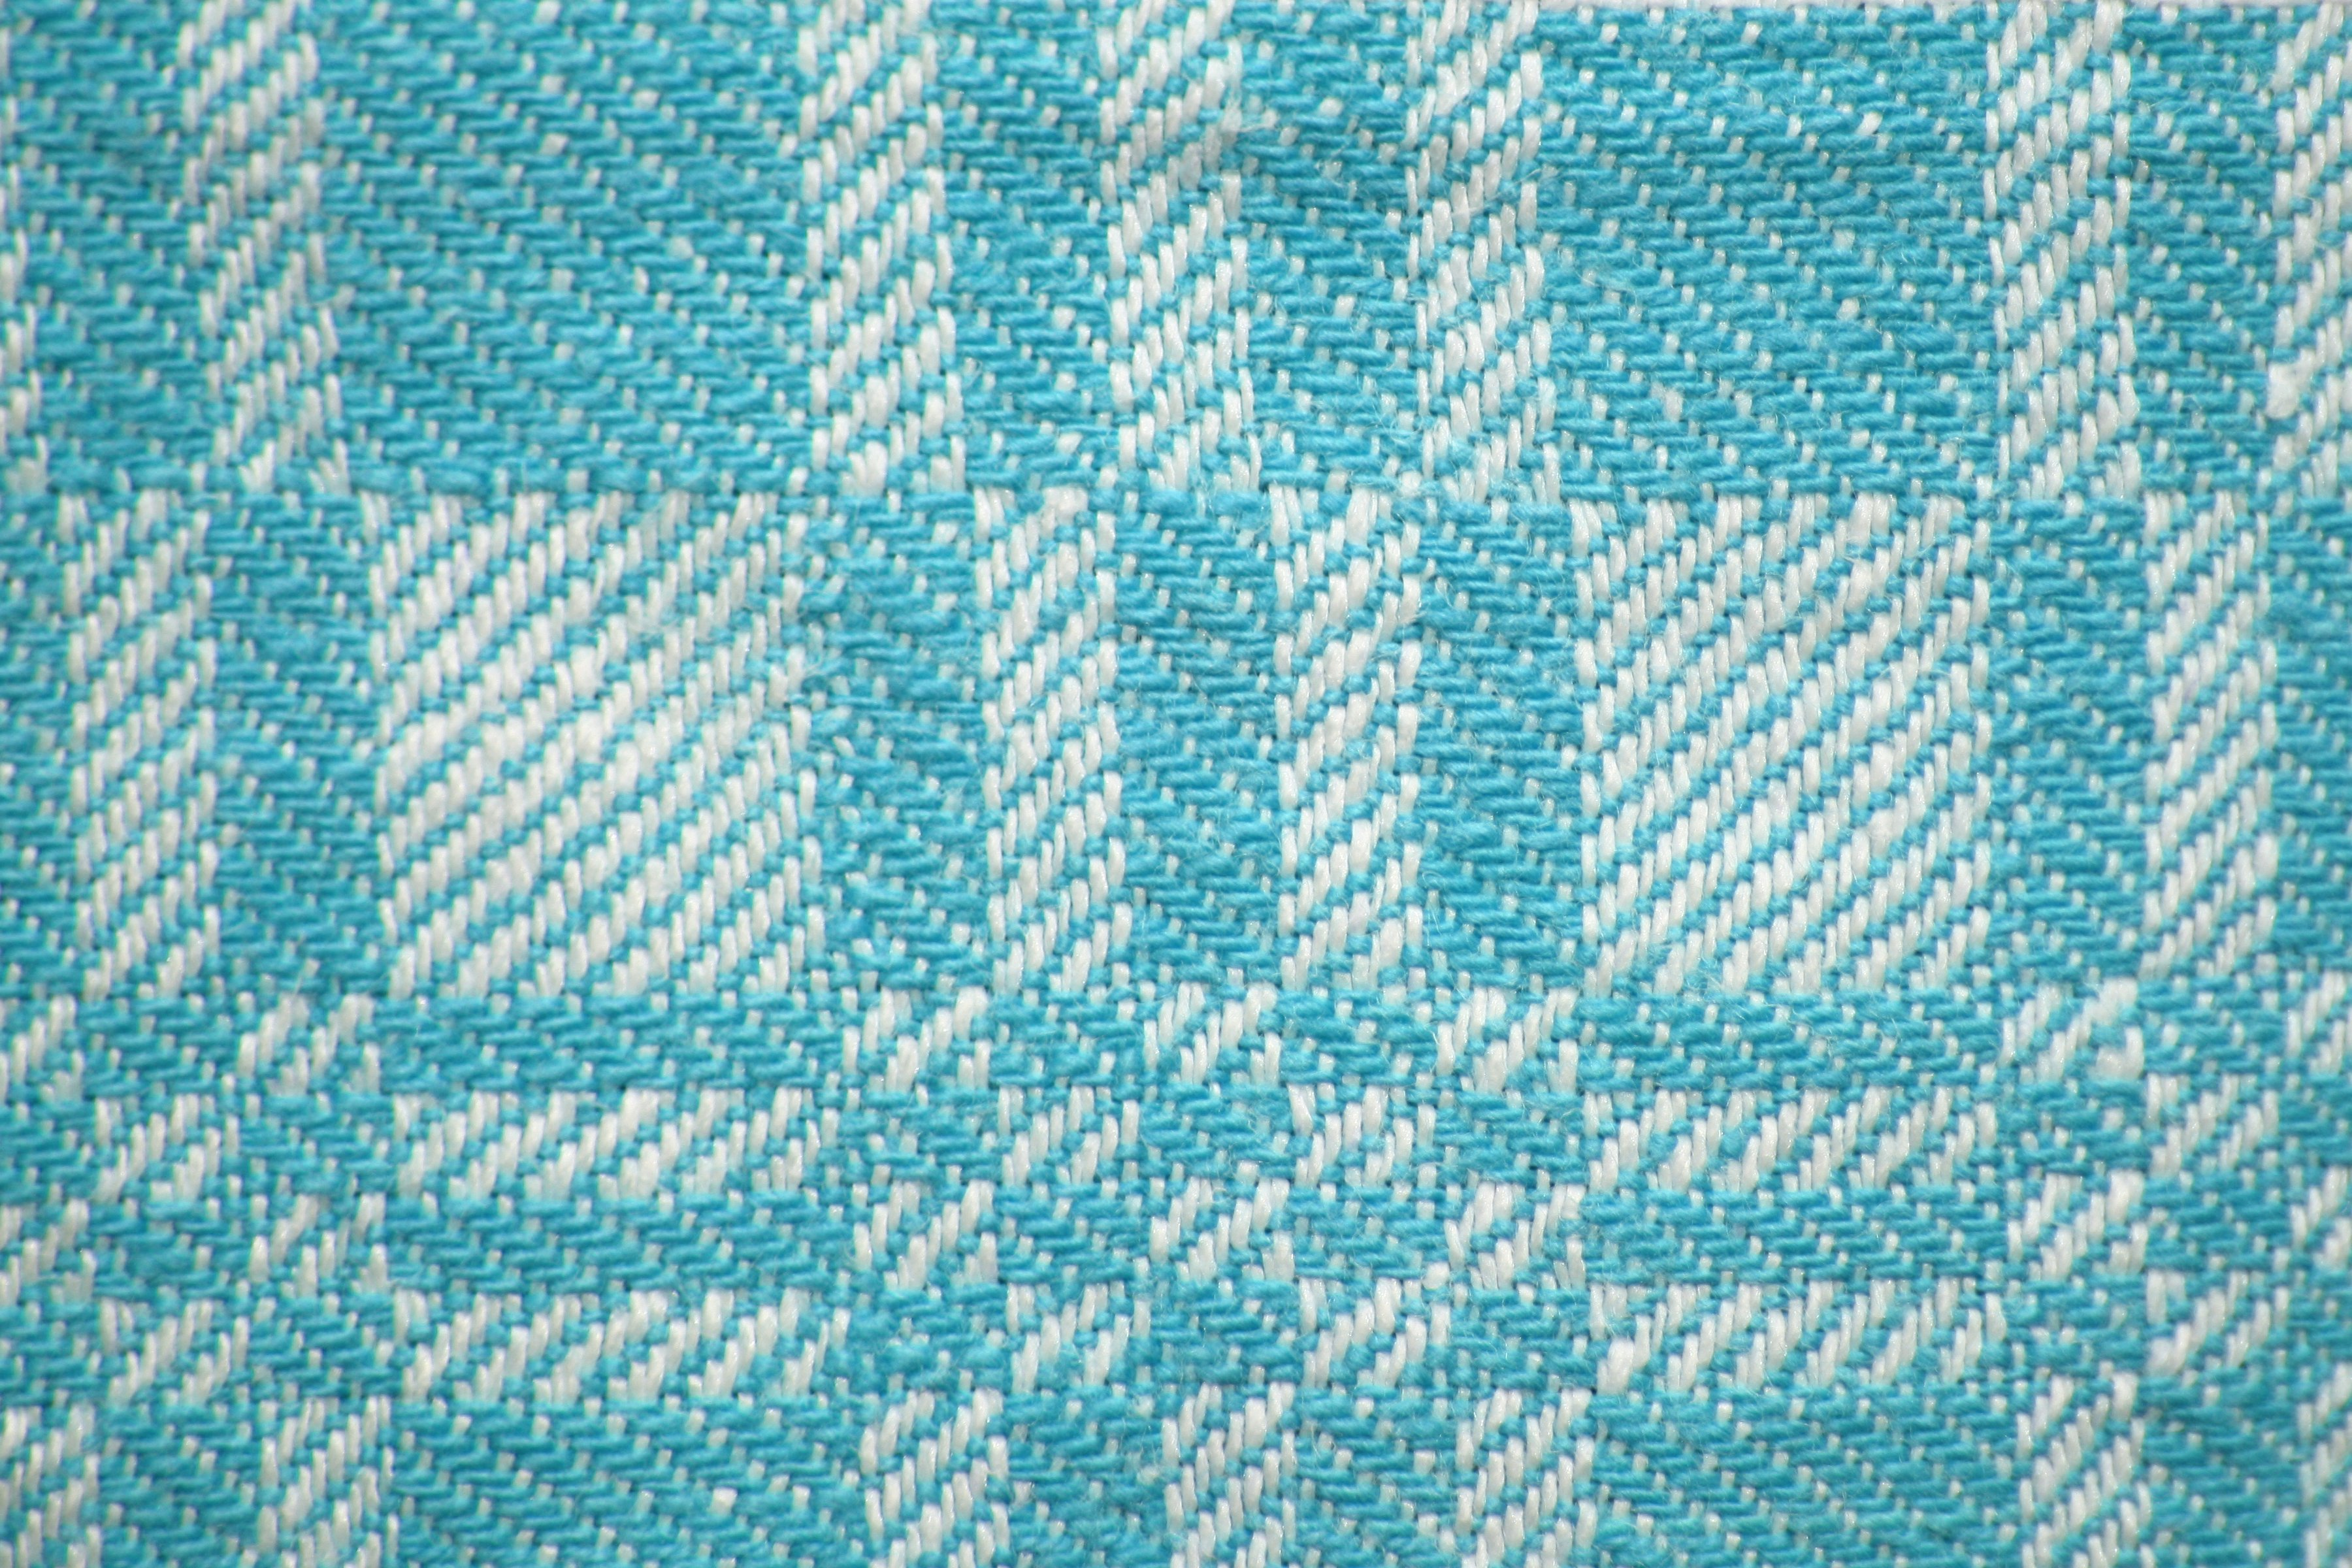 Teal And White Woven Fabric Texture With Squares Pattern